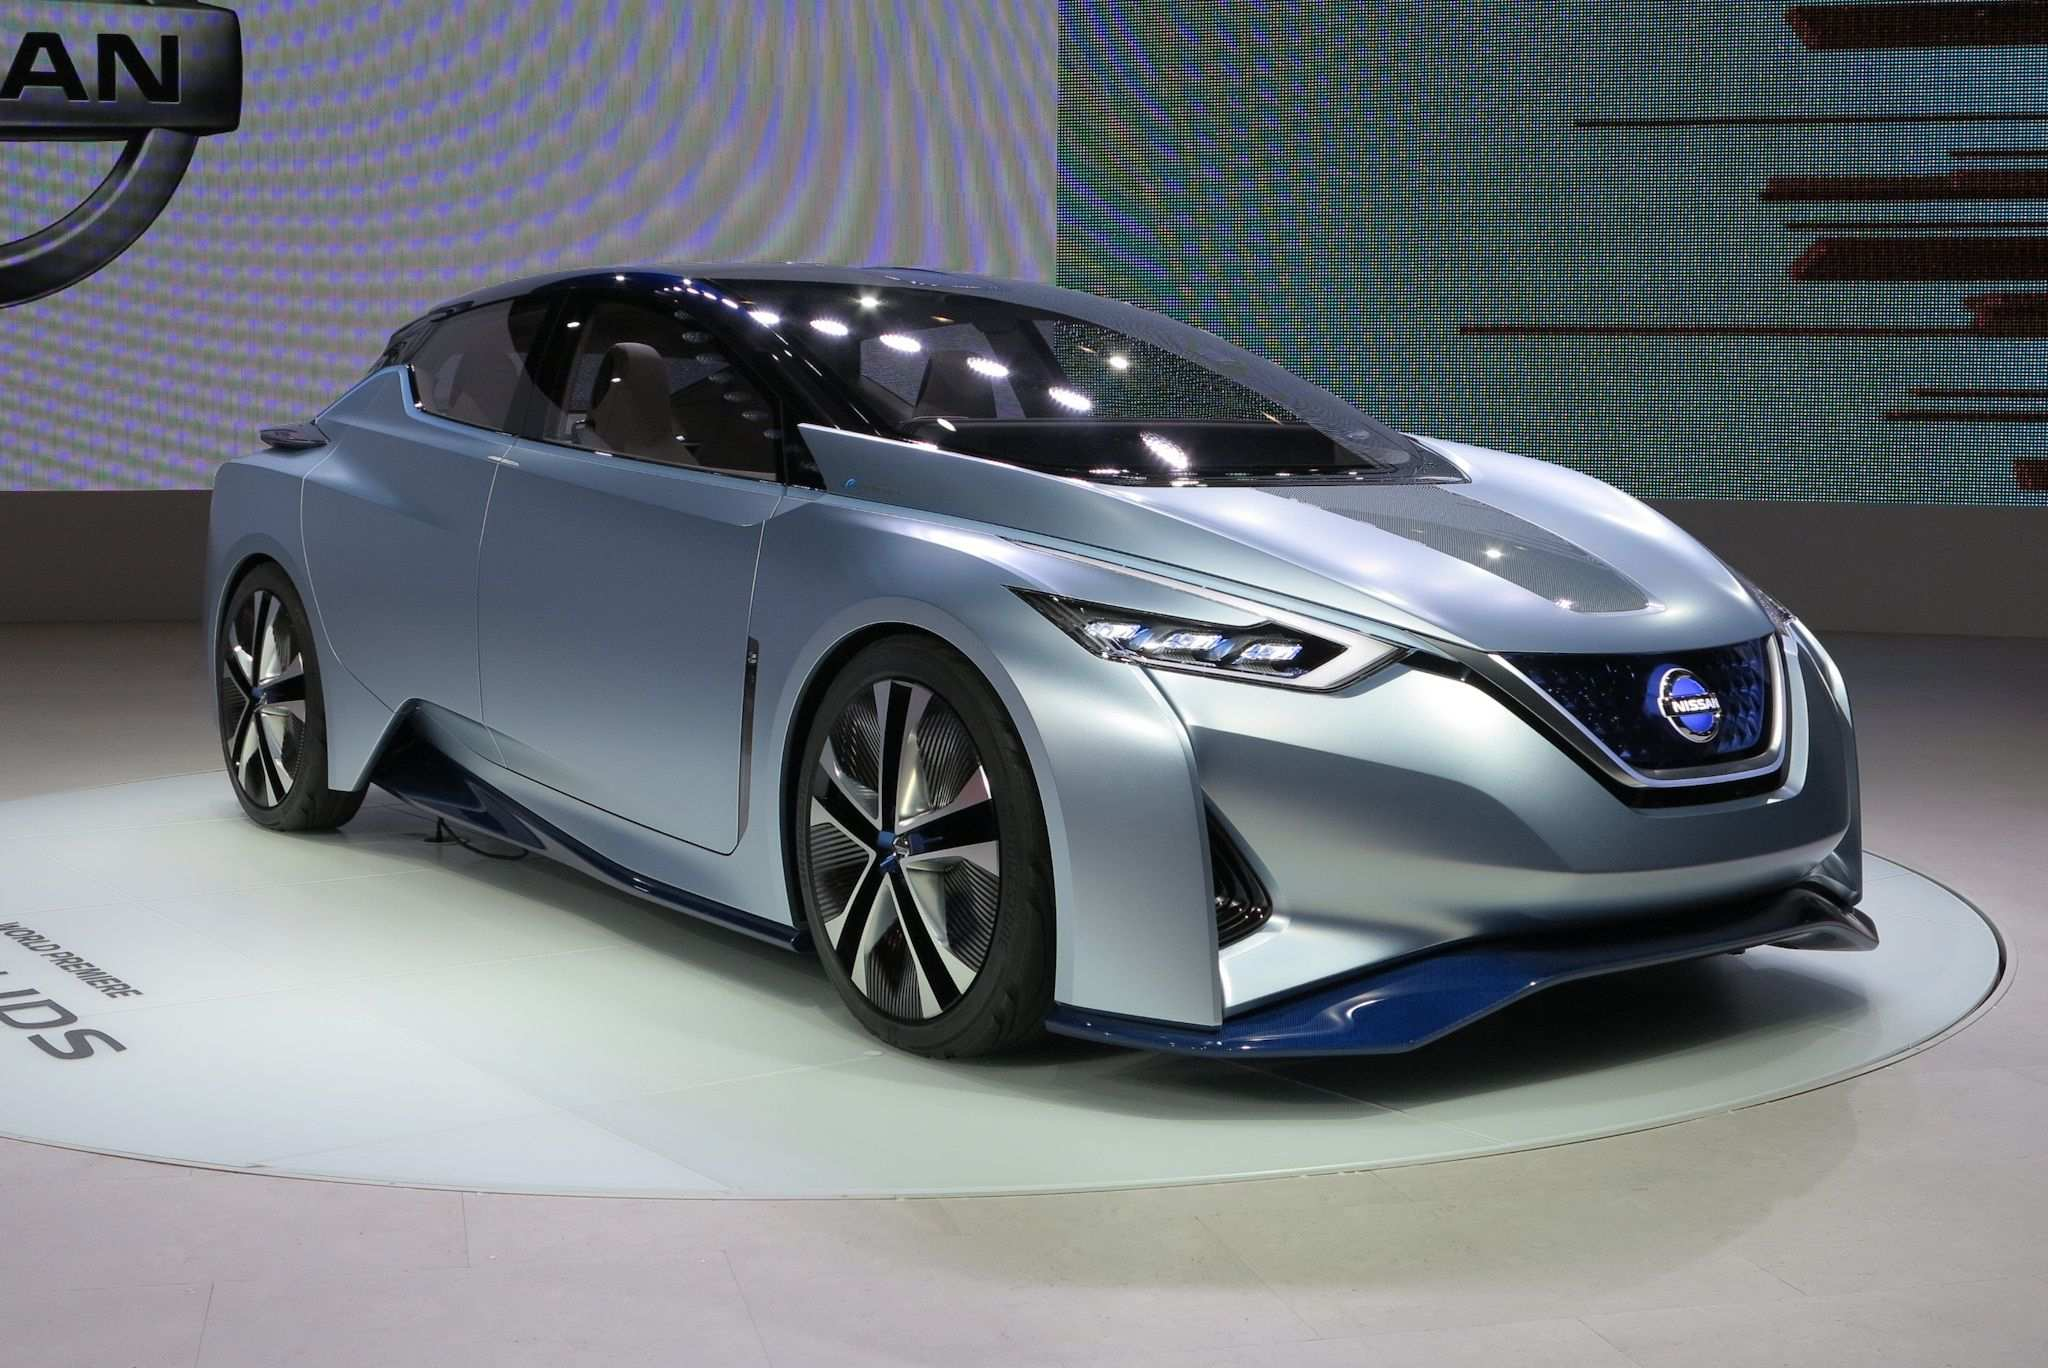 27 All New Nissan Leaf 2020 Concept